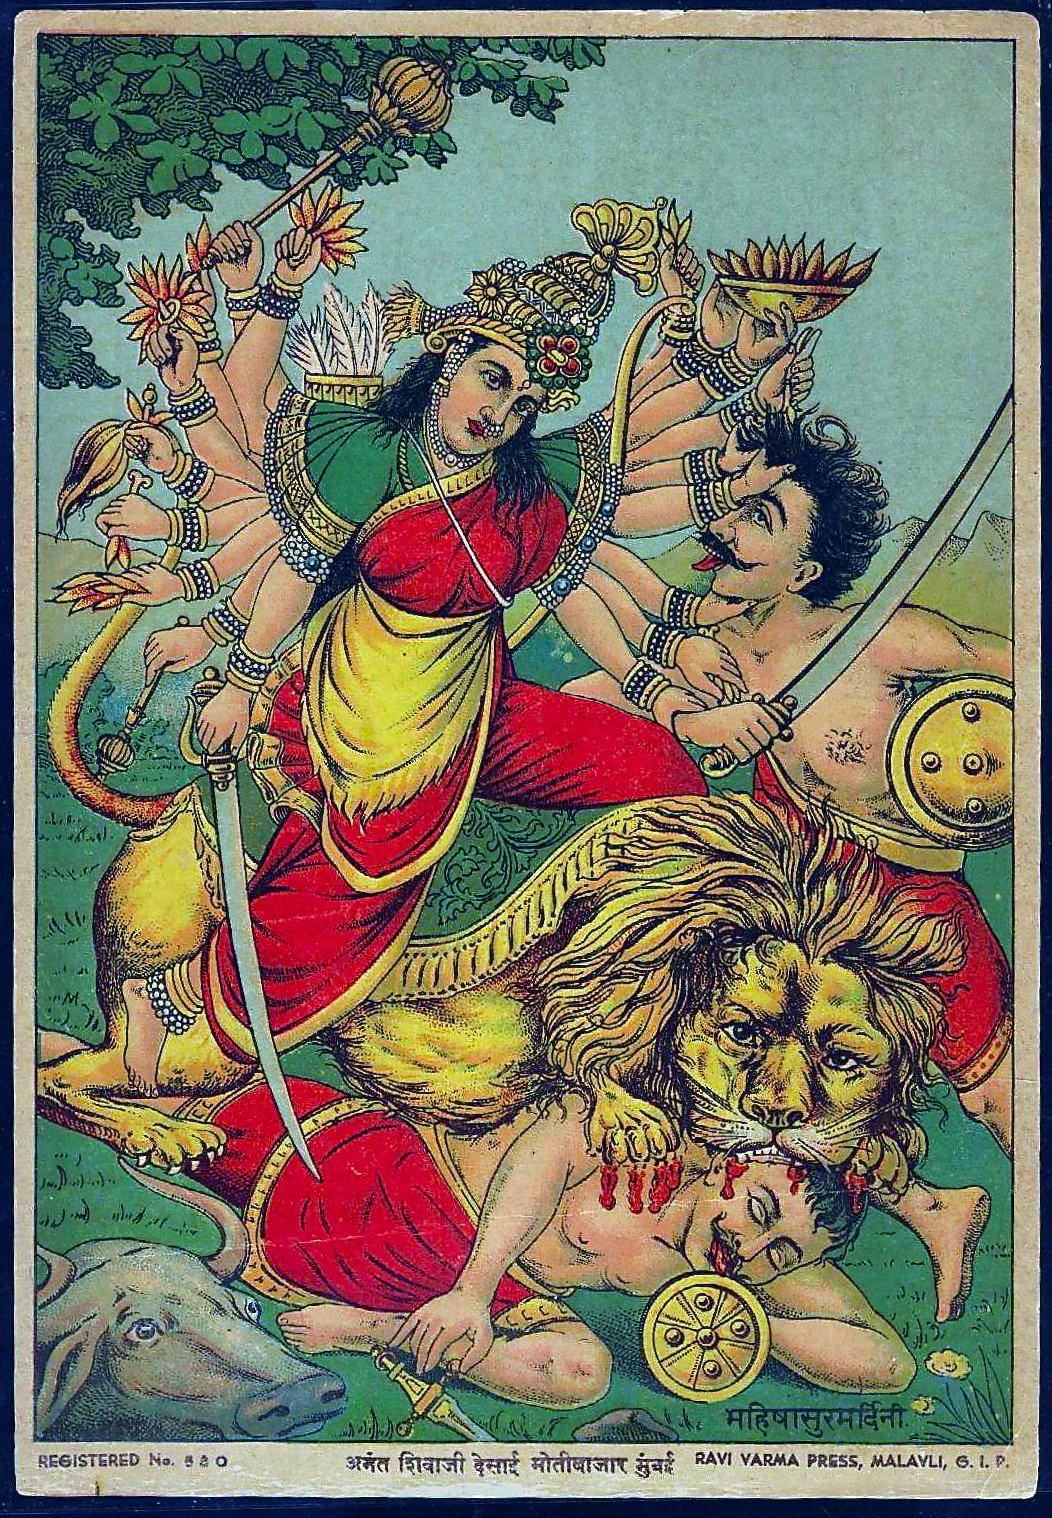 magictransistor :     Raja Ravi Varma. Durga Mahishasura-Mardini, Slayer of the Buffalo Demon. Ravi Varma Press. 1910.